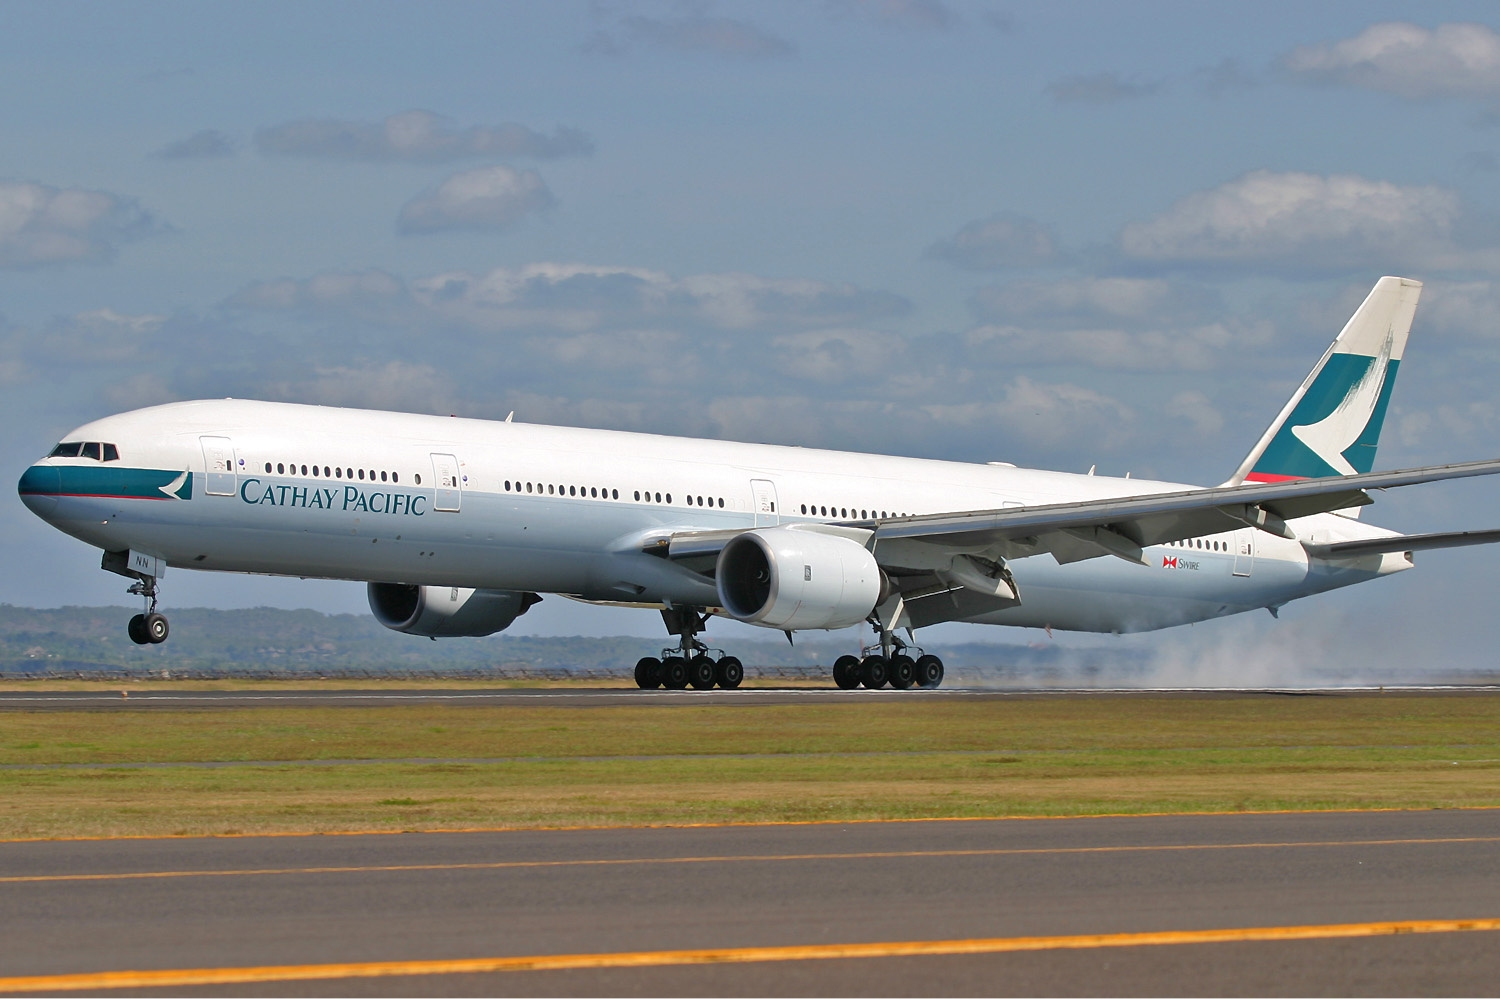 http://upload.wikimedia.org/wikipedia/commons/f/ff/Cathay_Pacific_Boeing_777-300_Pichugin-1.jpg